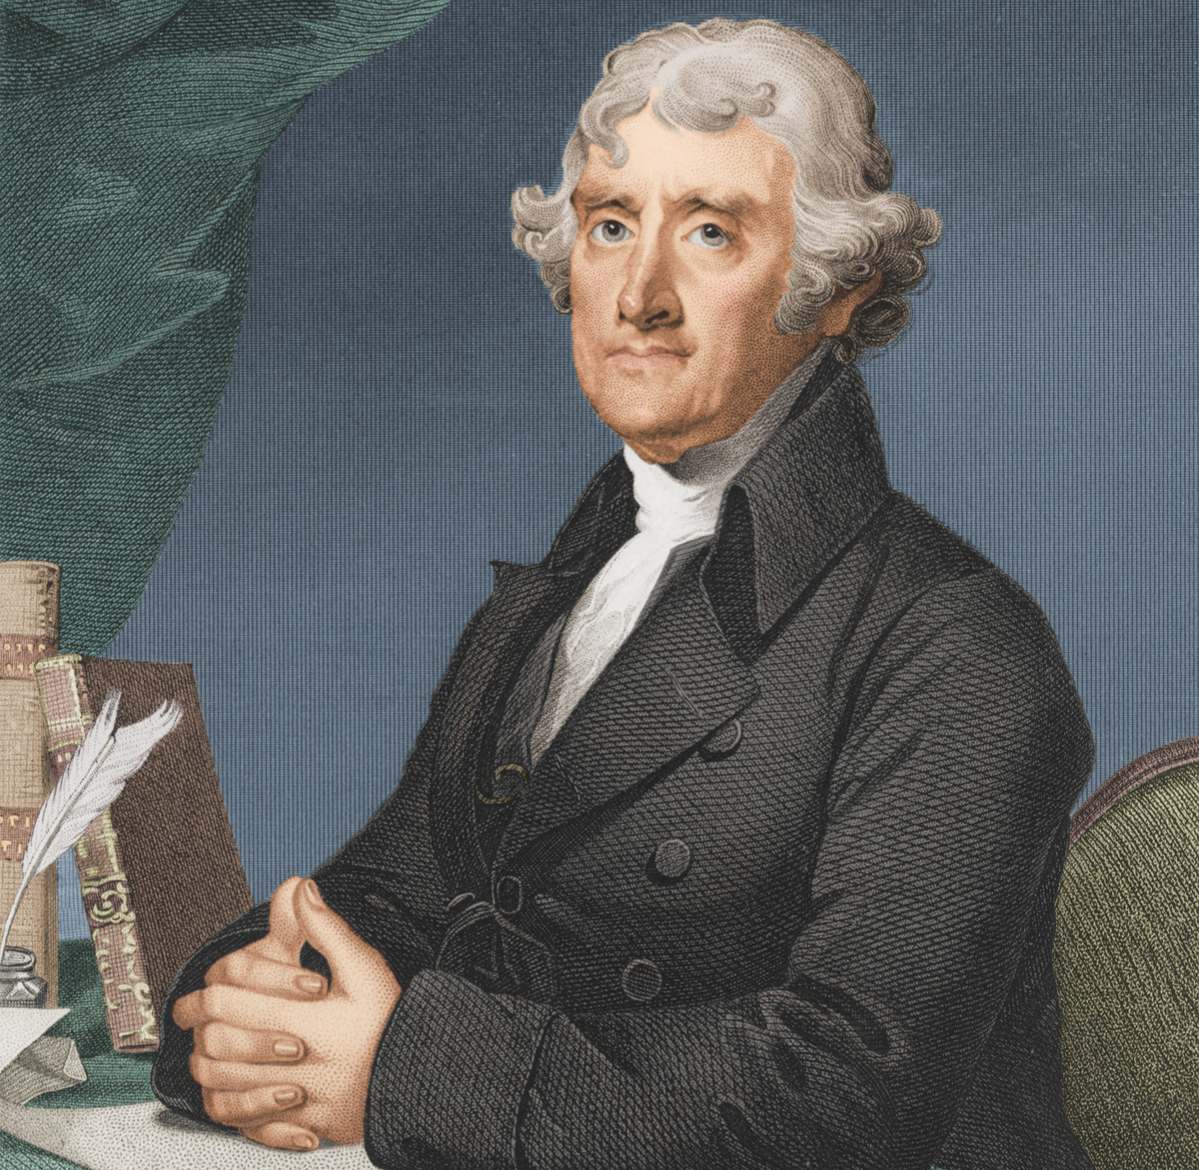 Colorized engraved portrait of American President Thomas Jefferson (1743 - 1826), early 1800s.